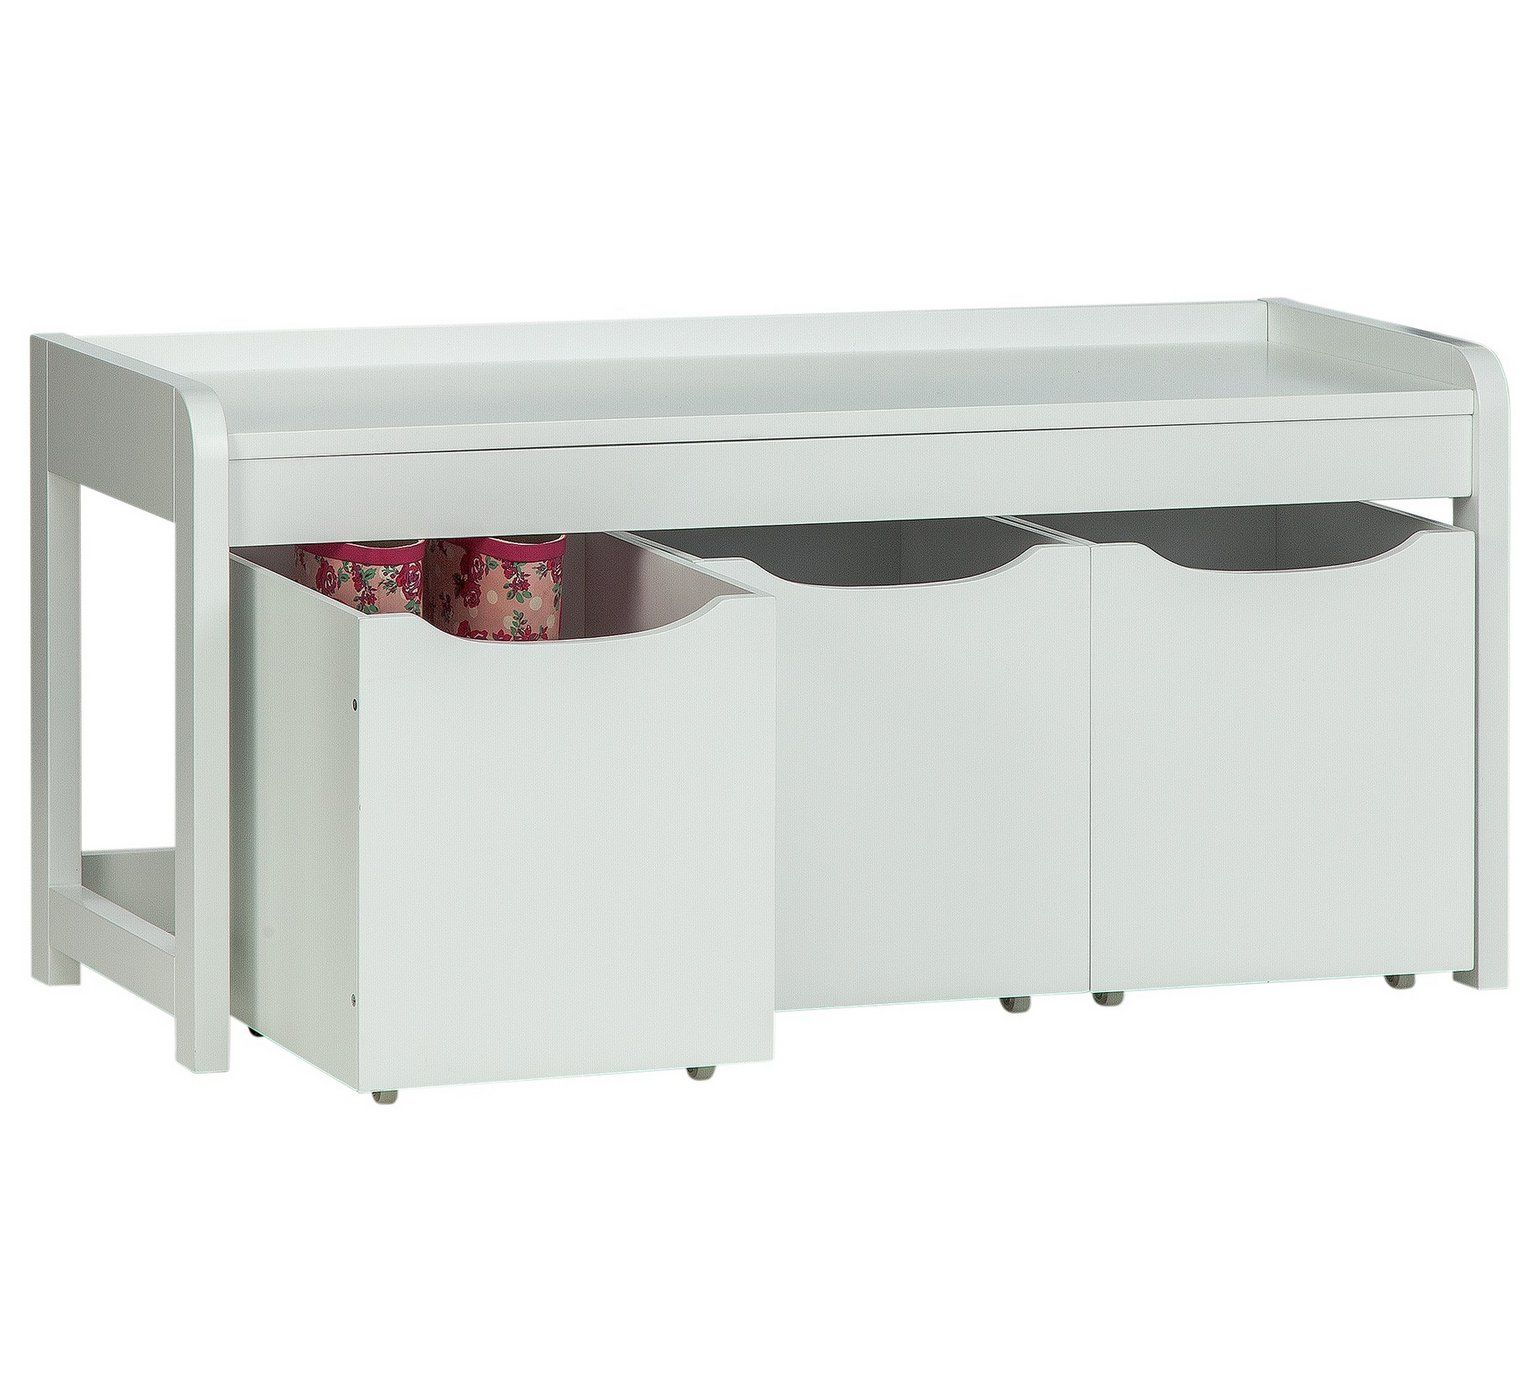 Buy HOME Harvard 3 Box Shoe Bench White at Argos